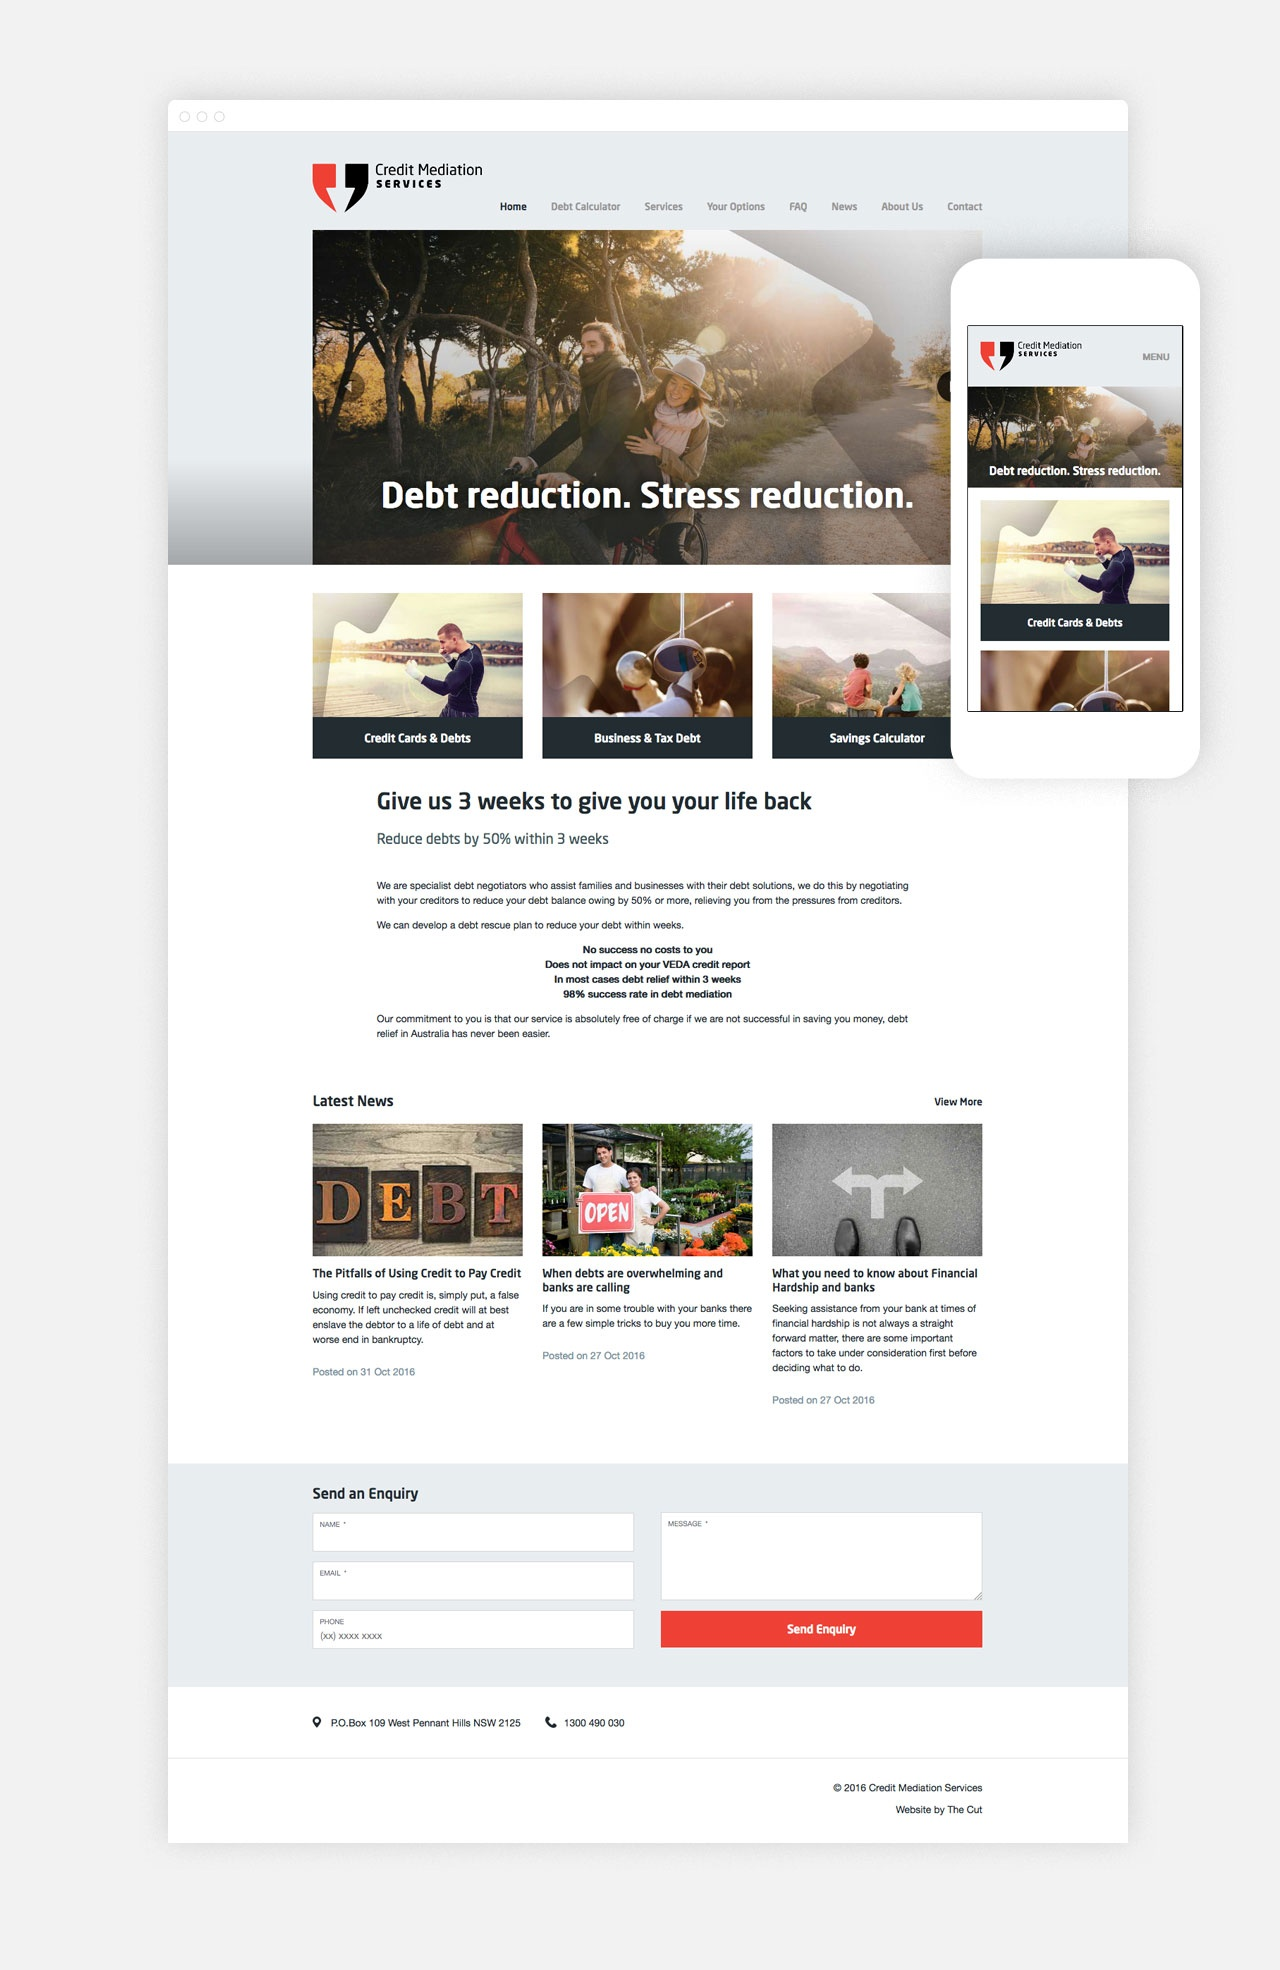 A smart new Homepage carries new brand images and messages